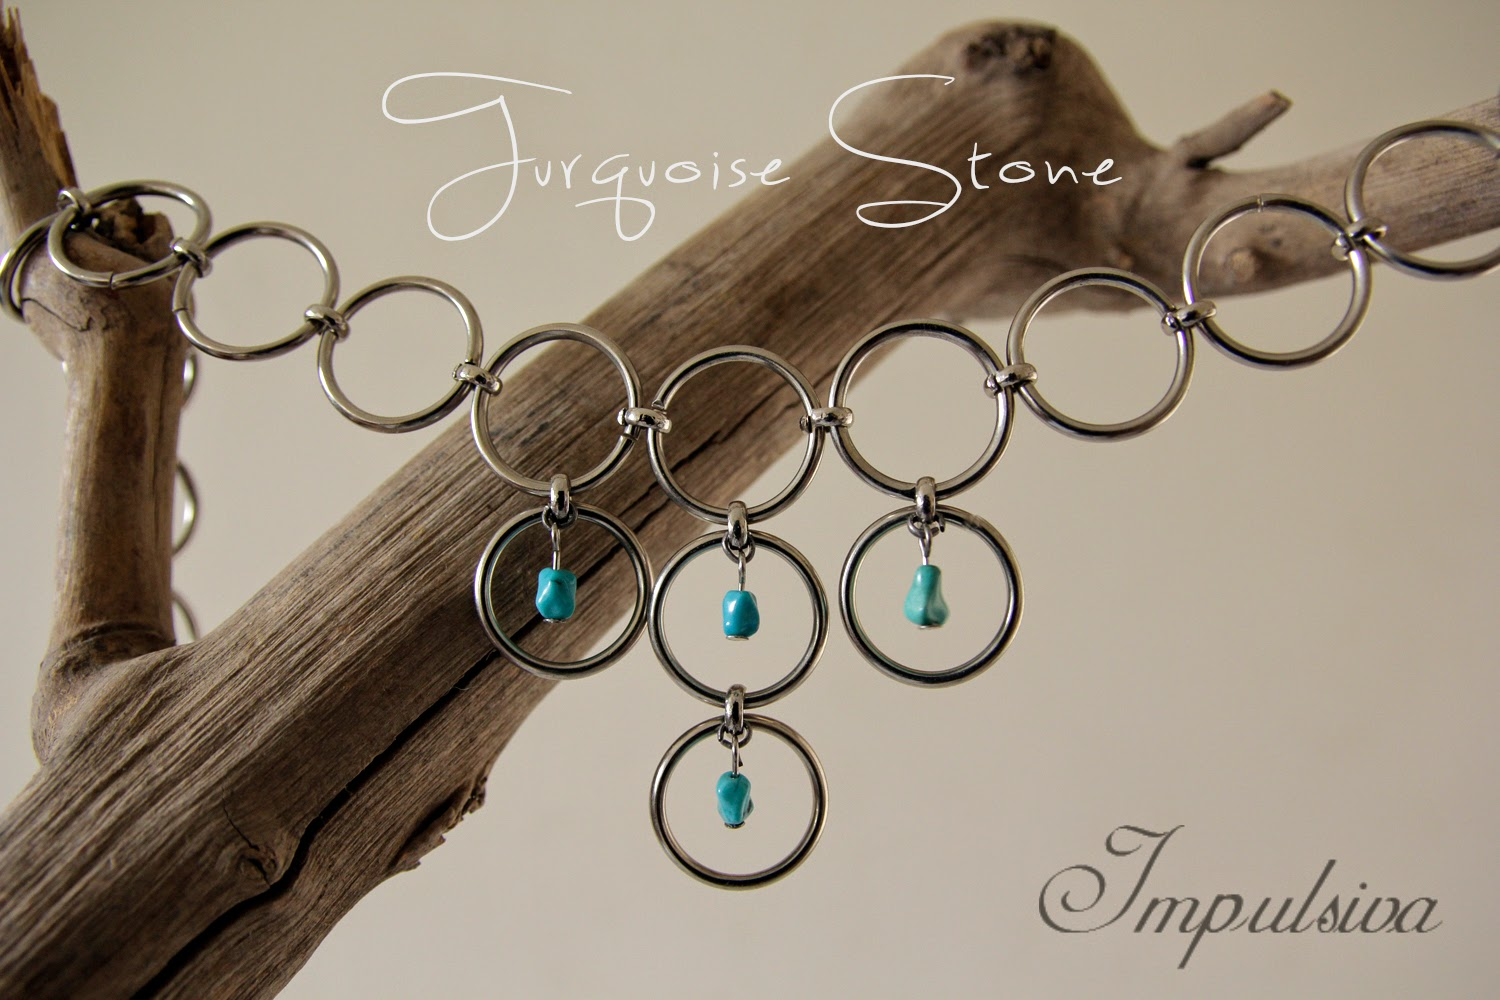 Ring chain necklace with turquoise stone